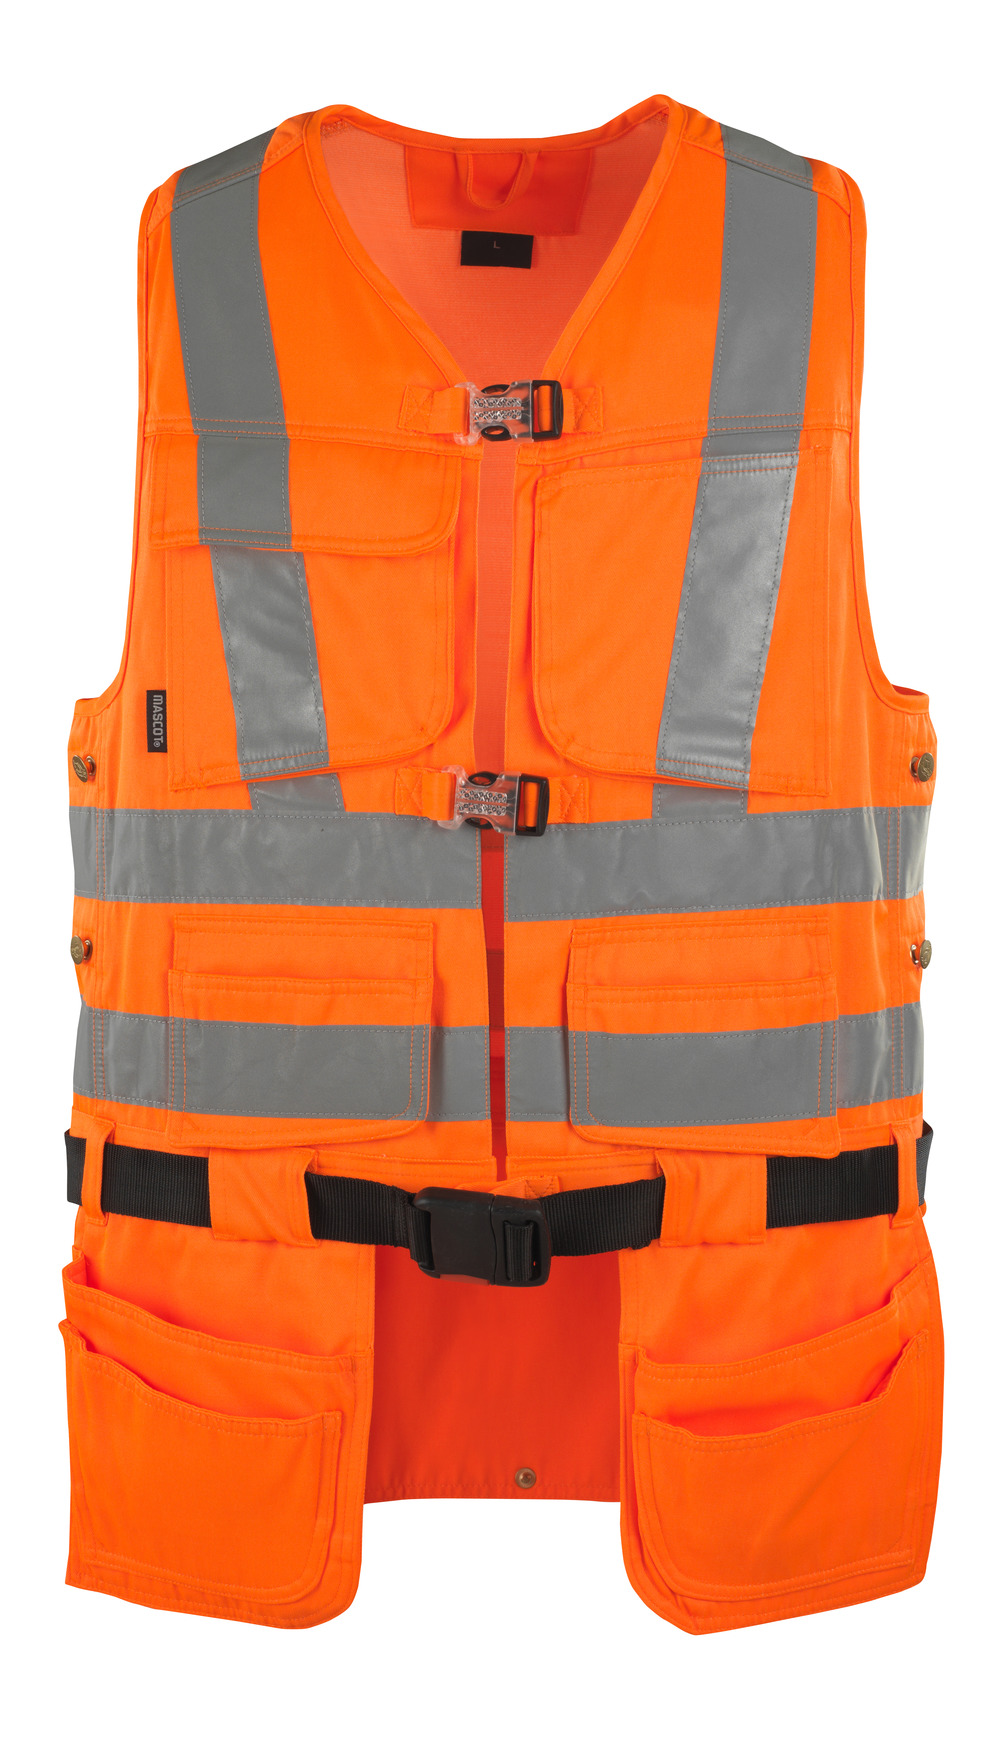 08089-860-14 Gilet porte-outils - Hi-vis orange